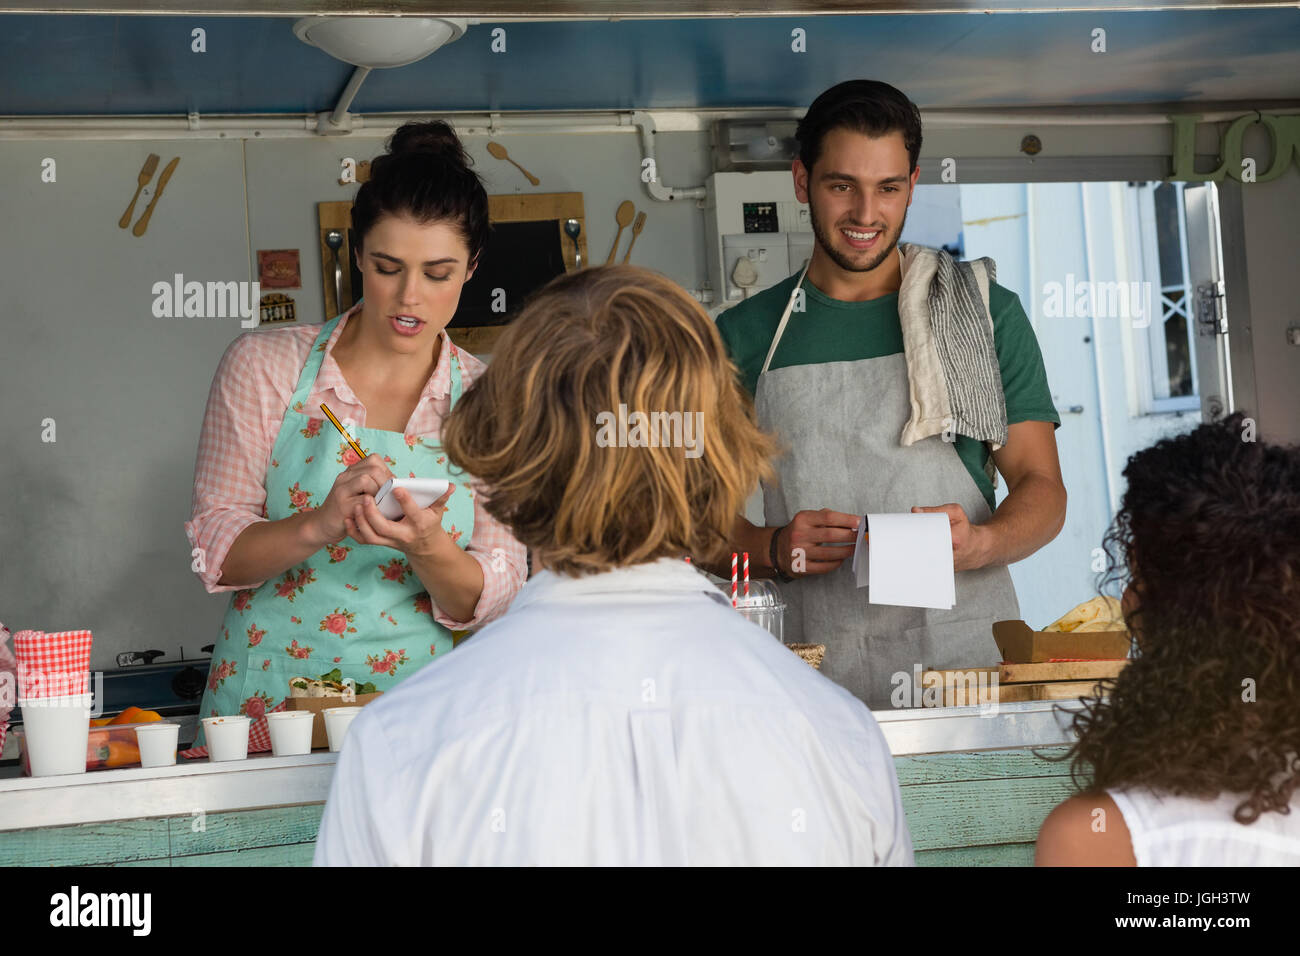 Ordering At Food Truck Stock Photos & Ordering At Food Truck